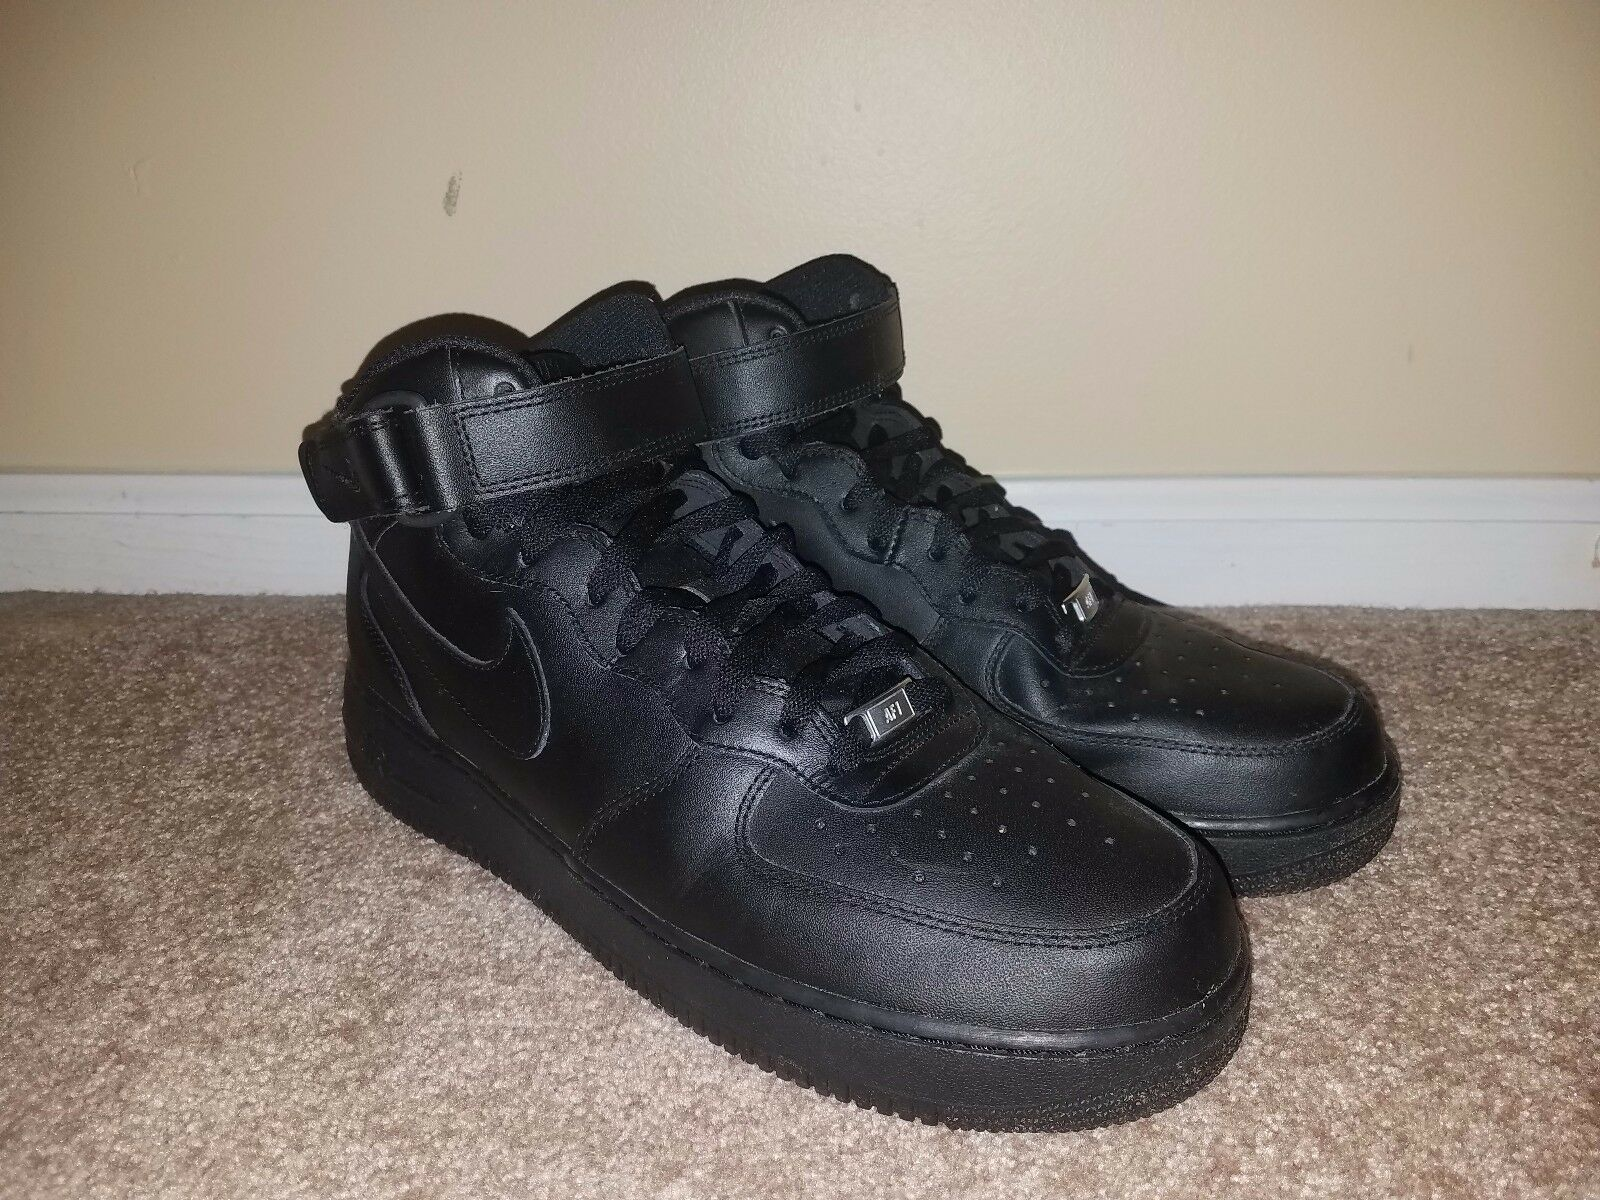 Black Nike Airforce 1 Mid 07, Size 11.5